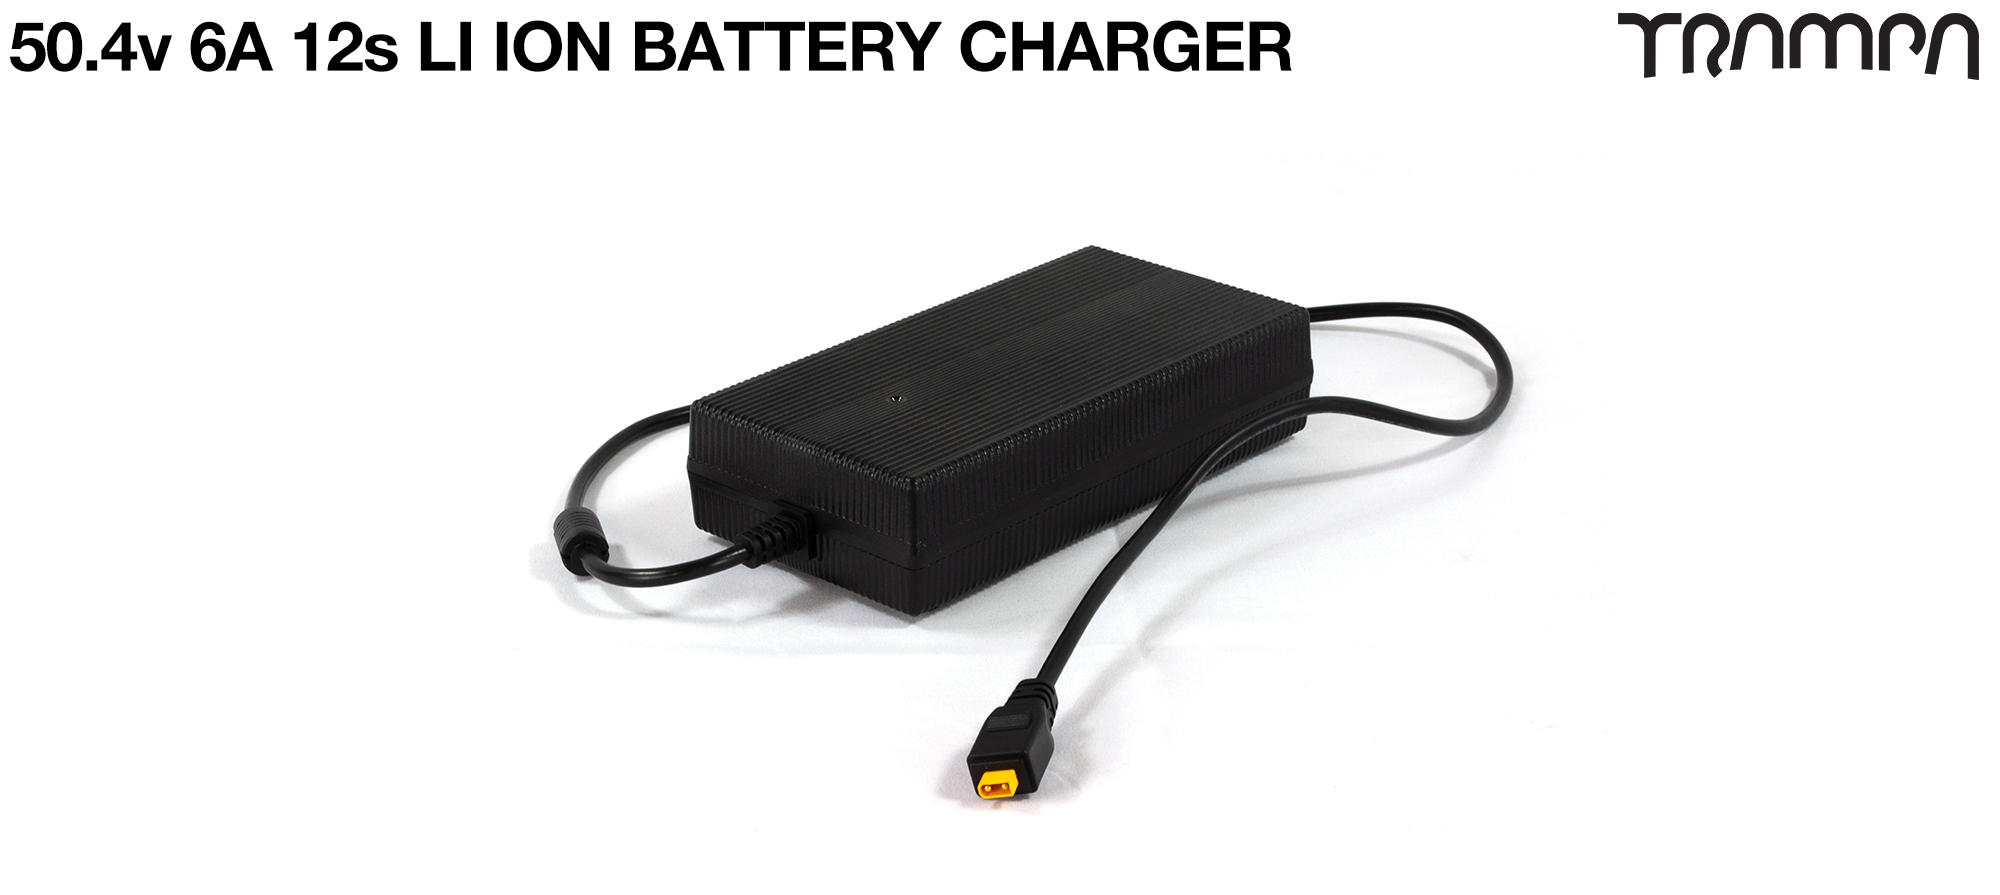 Yes please add a 6Ah Li-On Charger to my purchase (+£70)